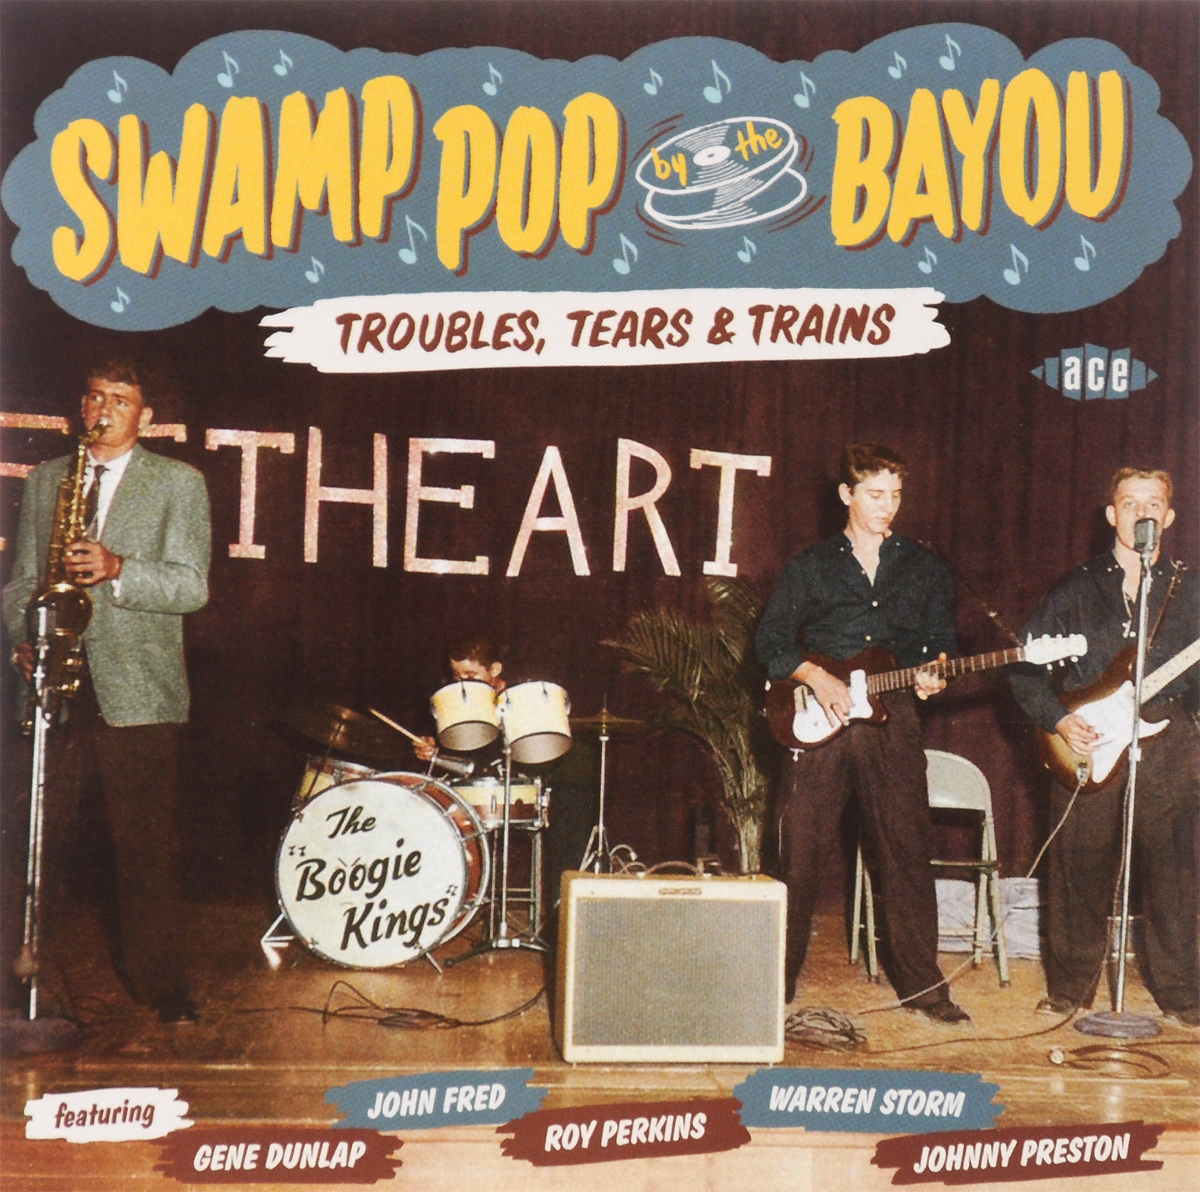 Swamp Pop By The Bayou. Troubles, Tears & Trains